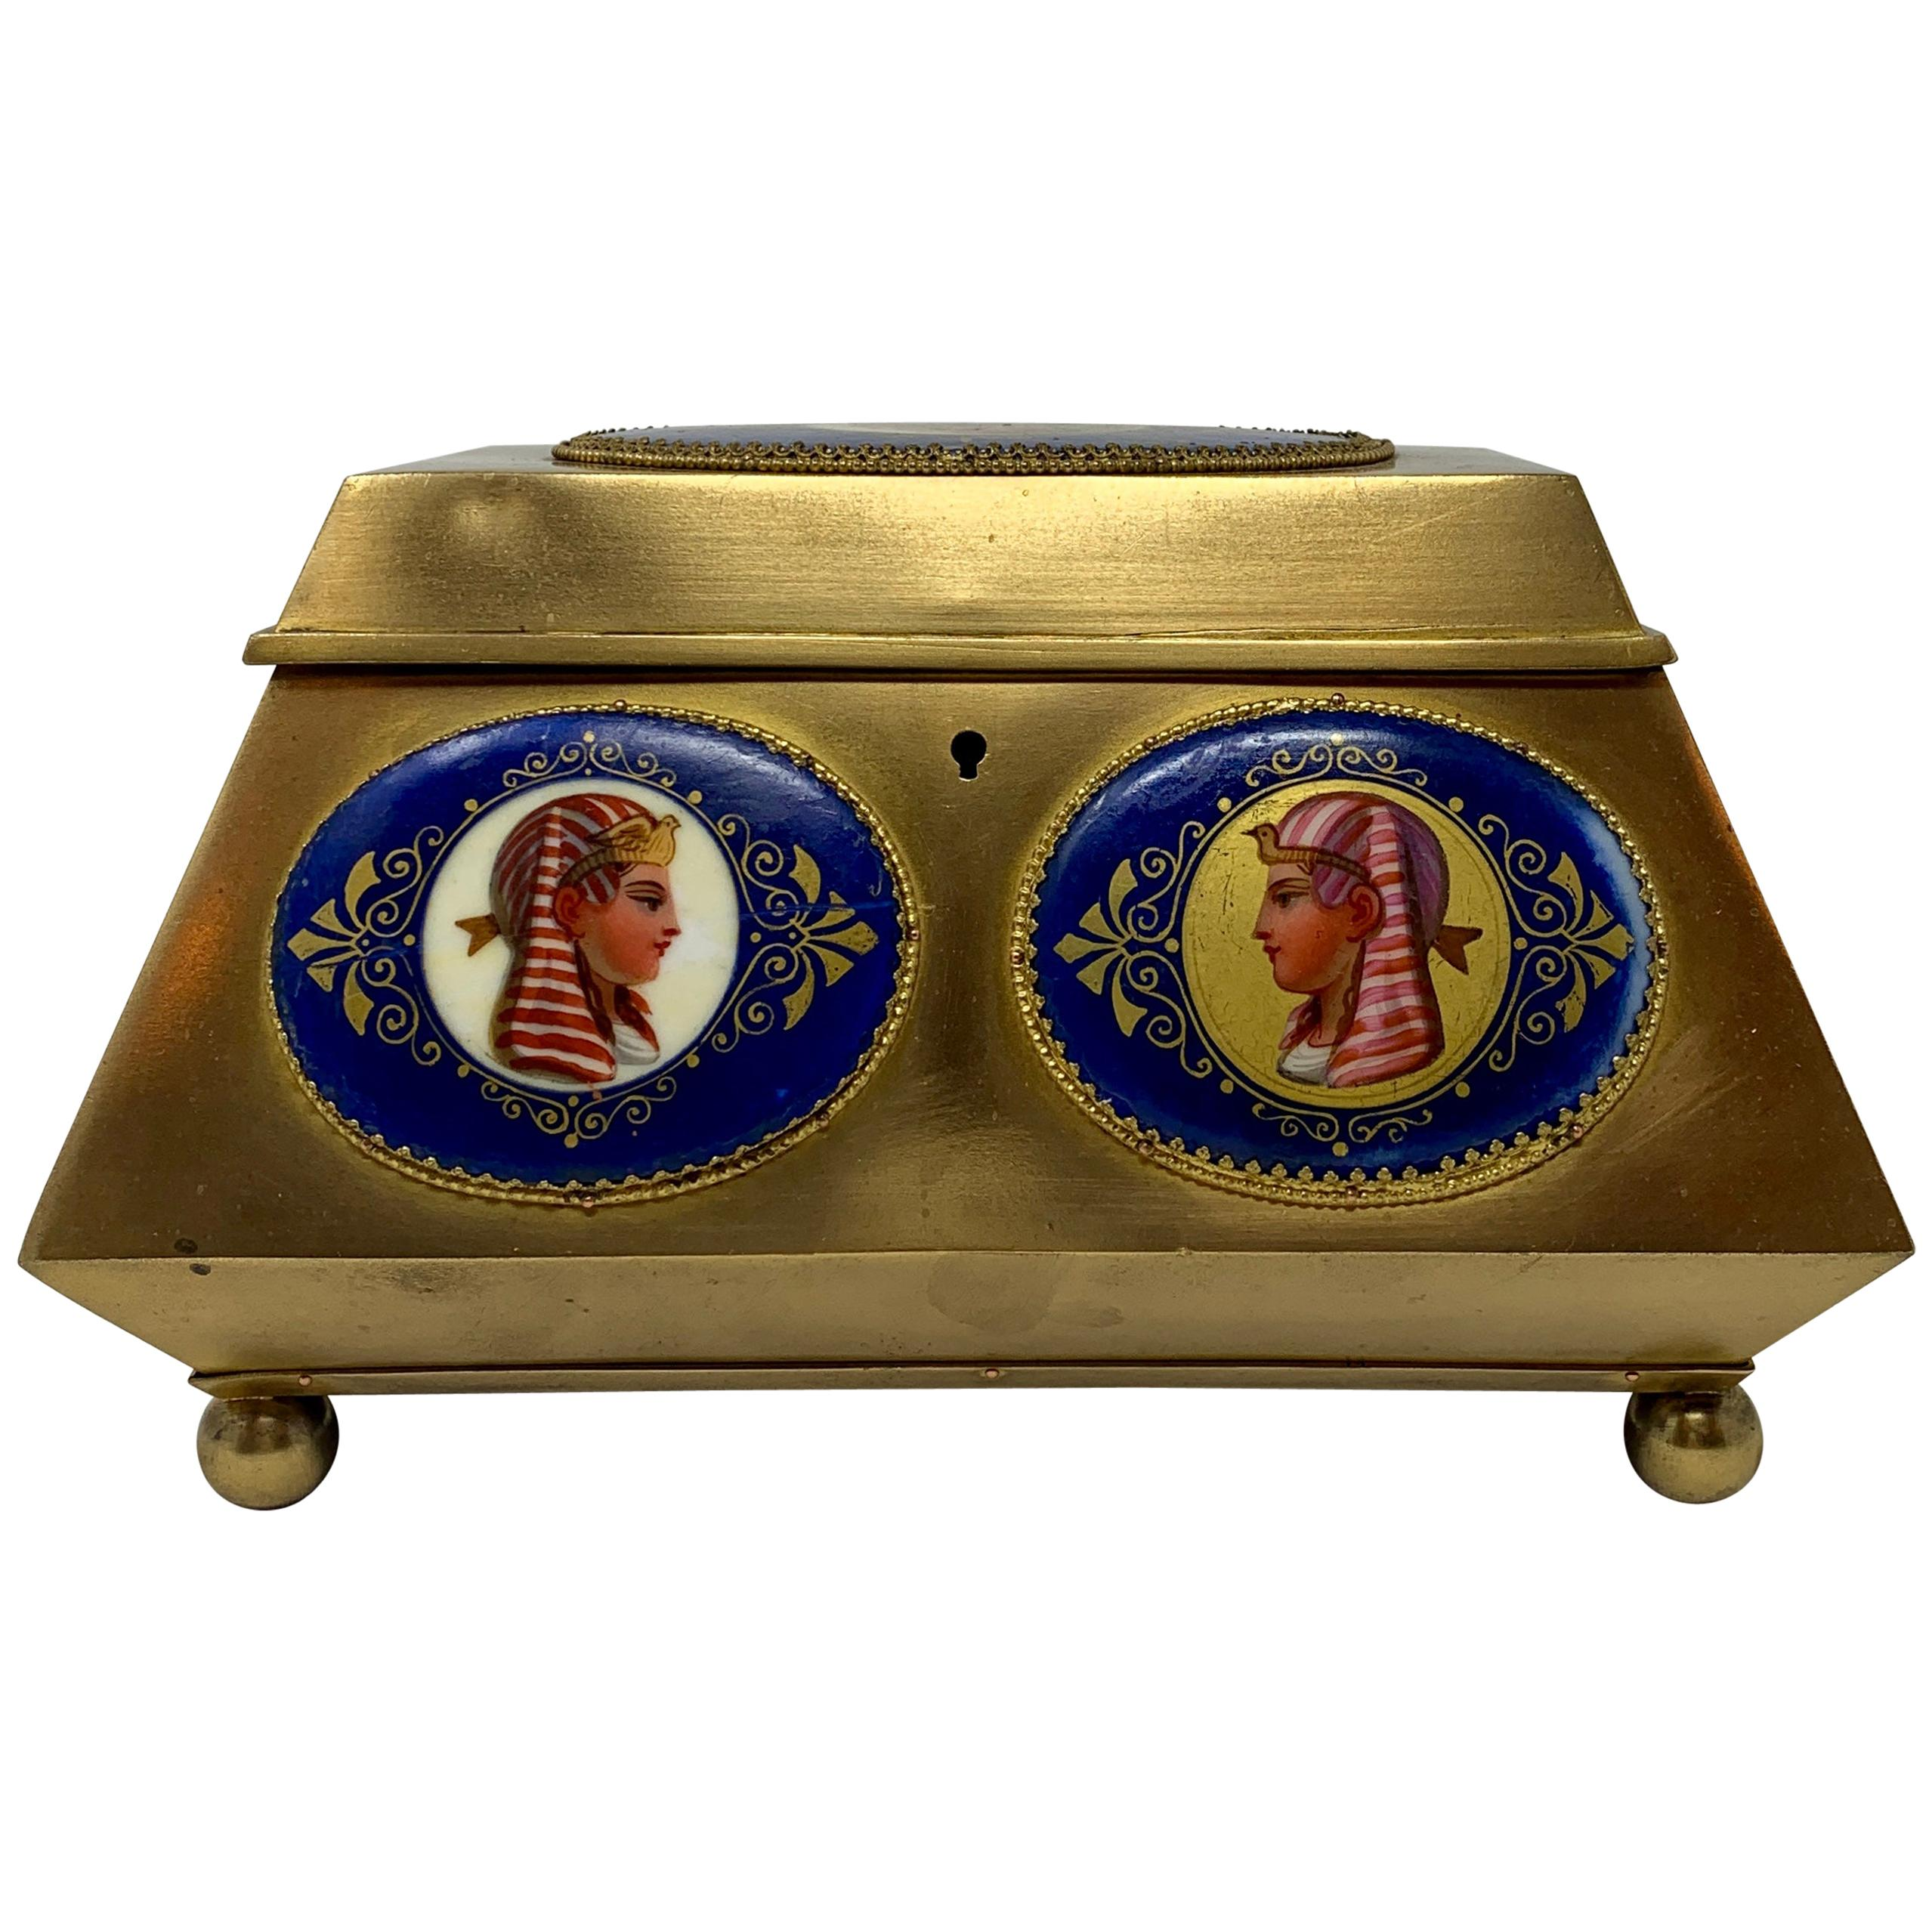 Antique Egyptian Revival Ormolu Jewel Box , circa 1890